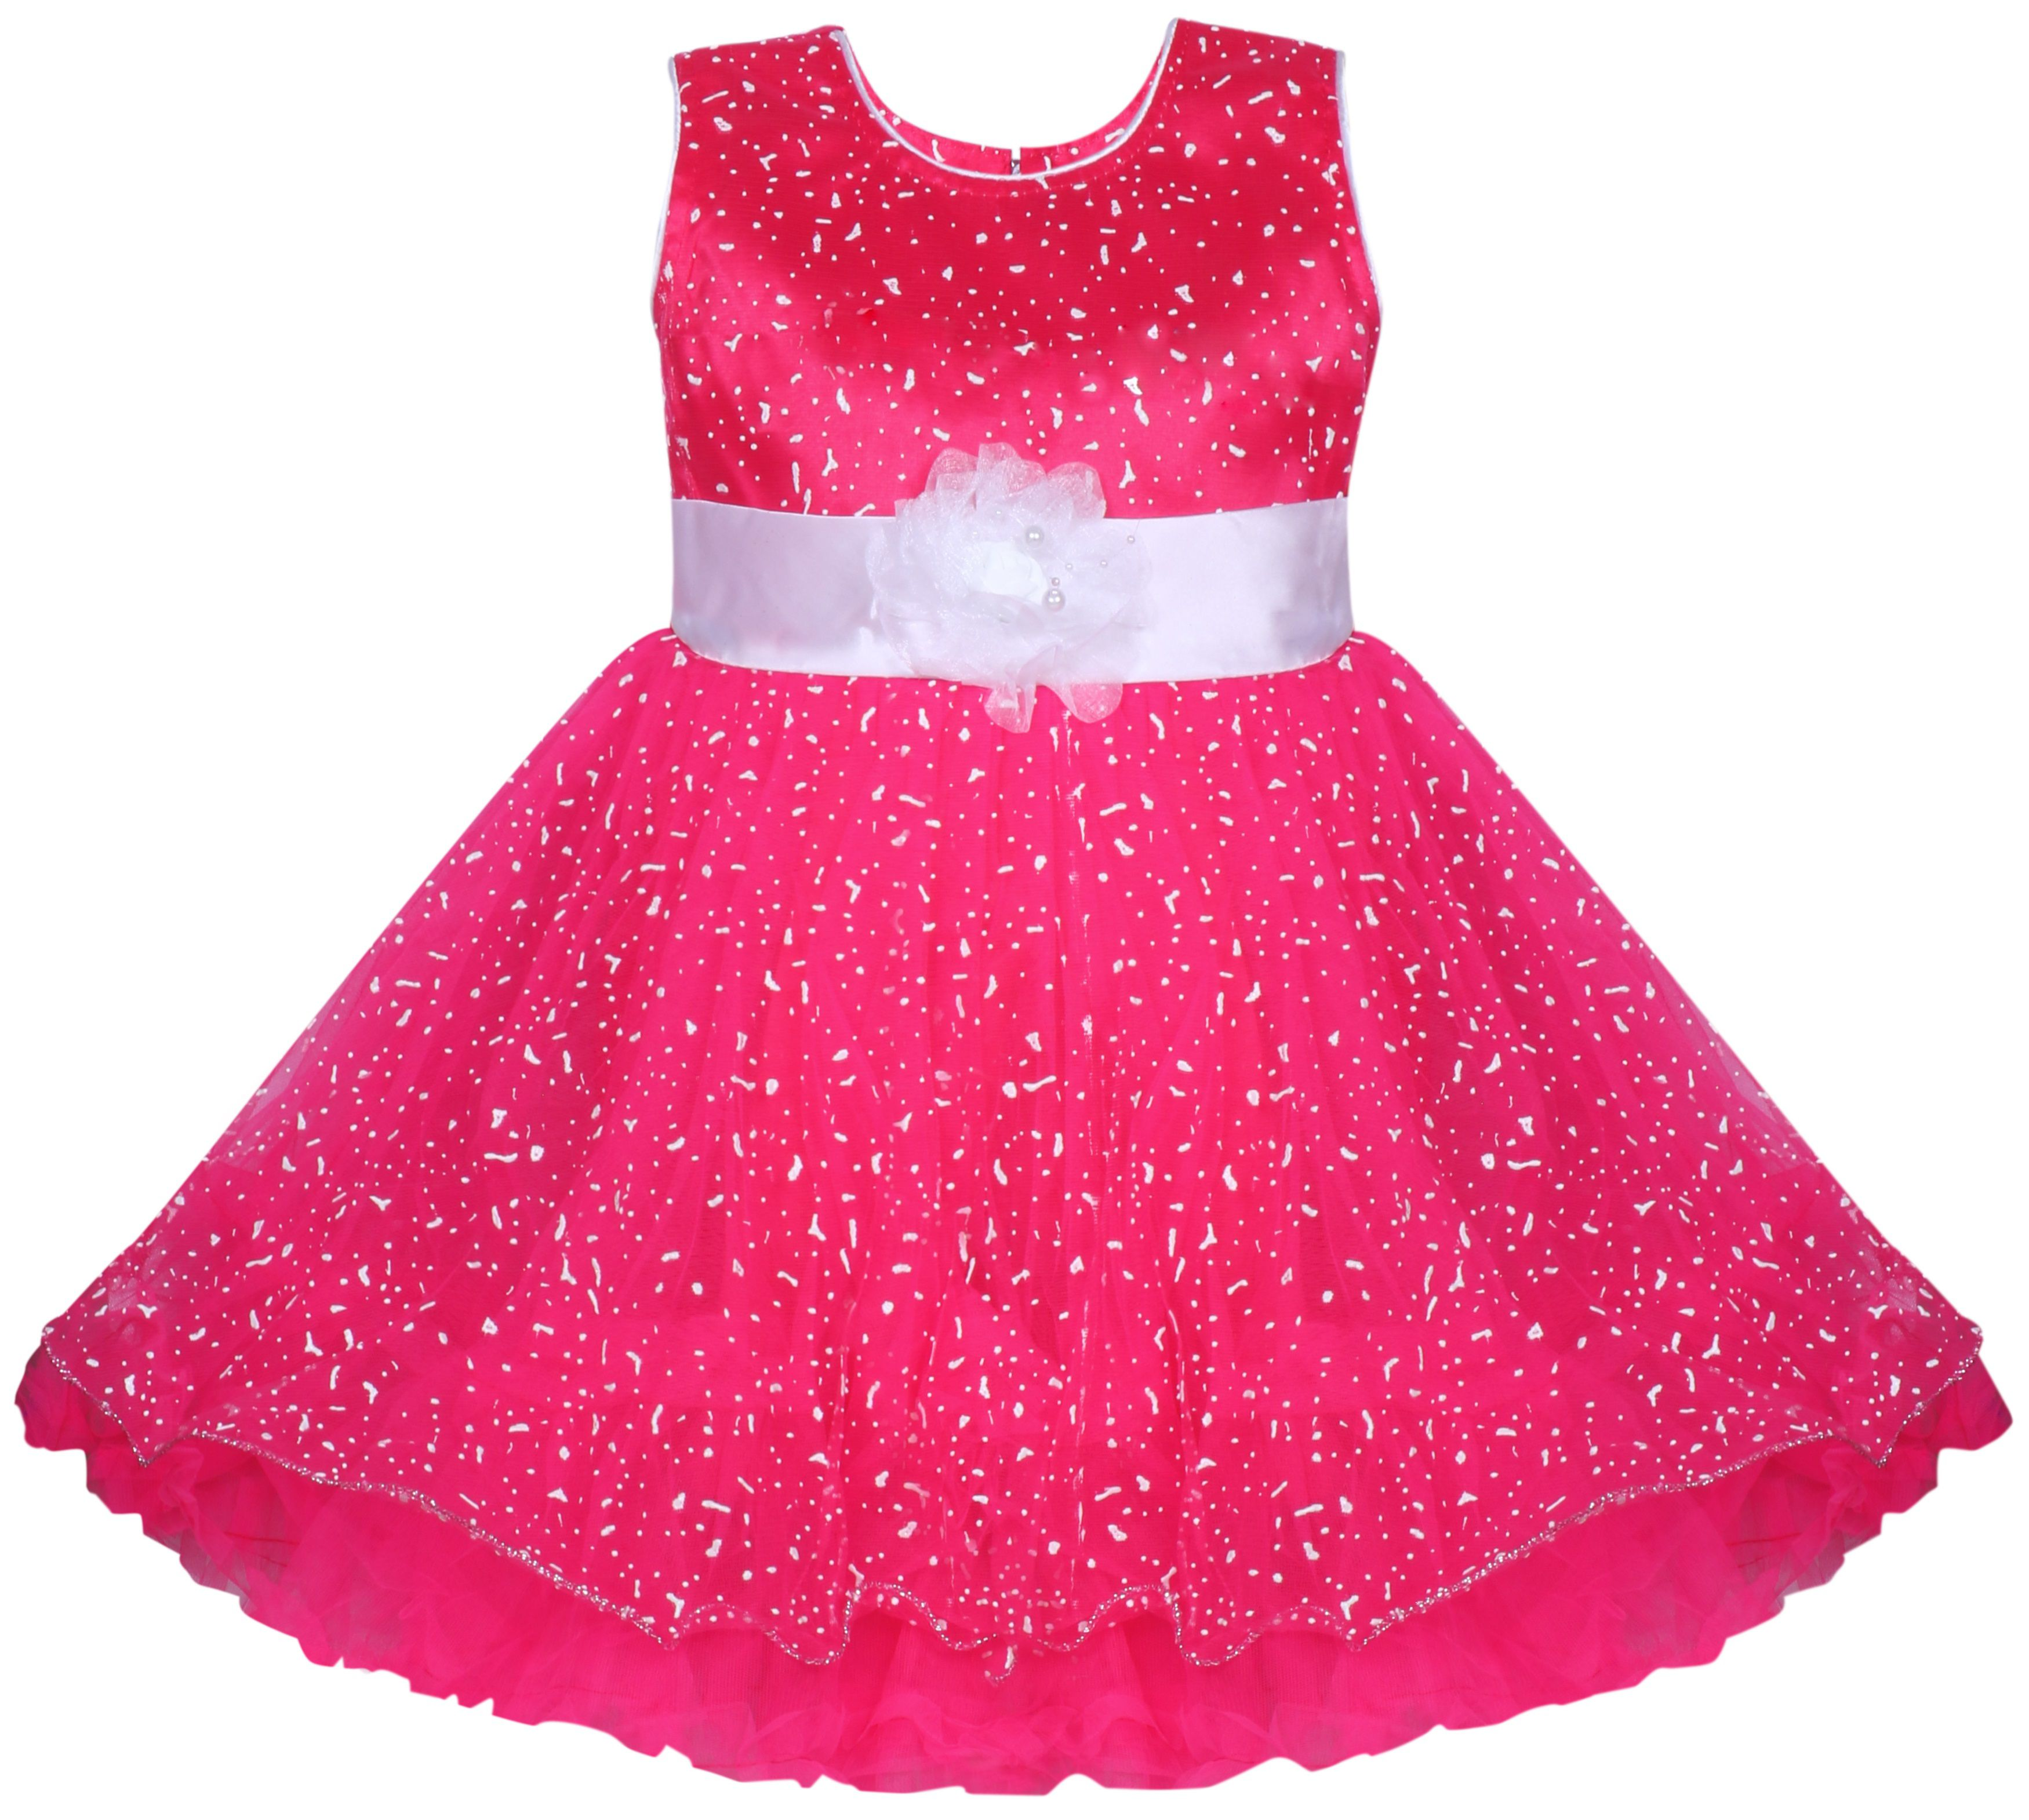 Mpc Cute Fashion Baby Girl s Dew Drop Party Wear Frock Dress For